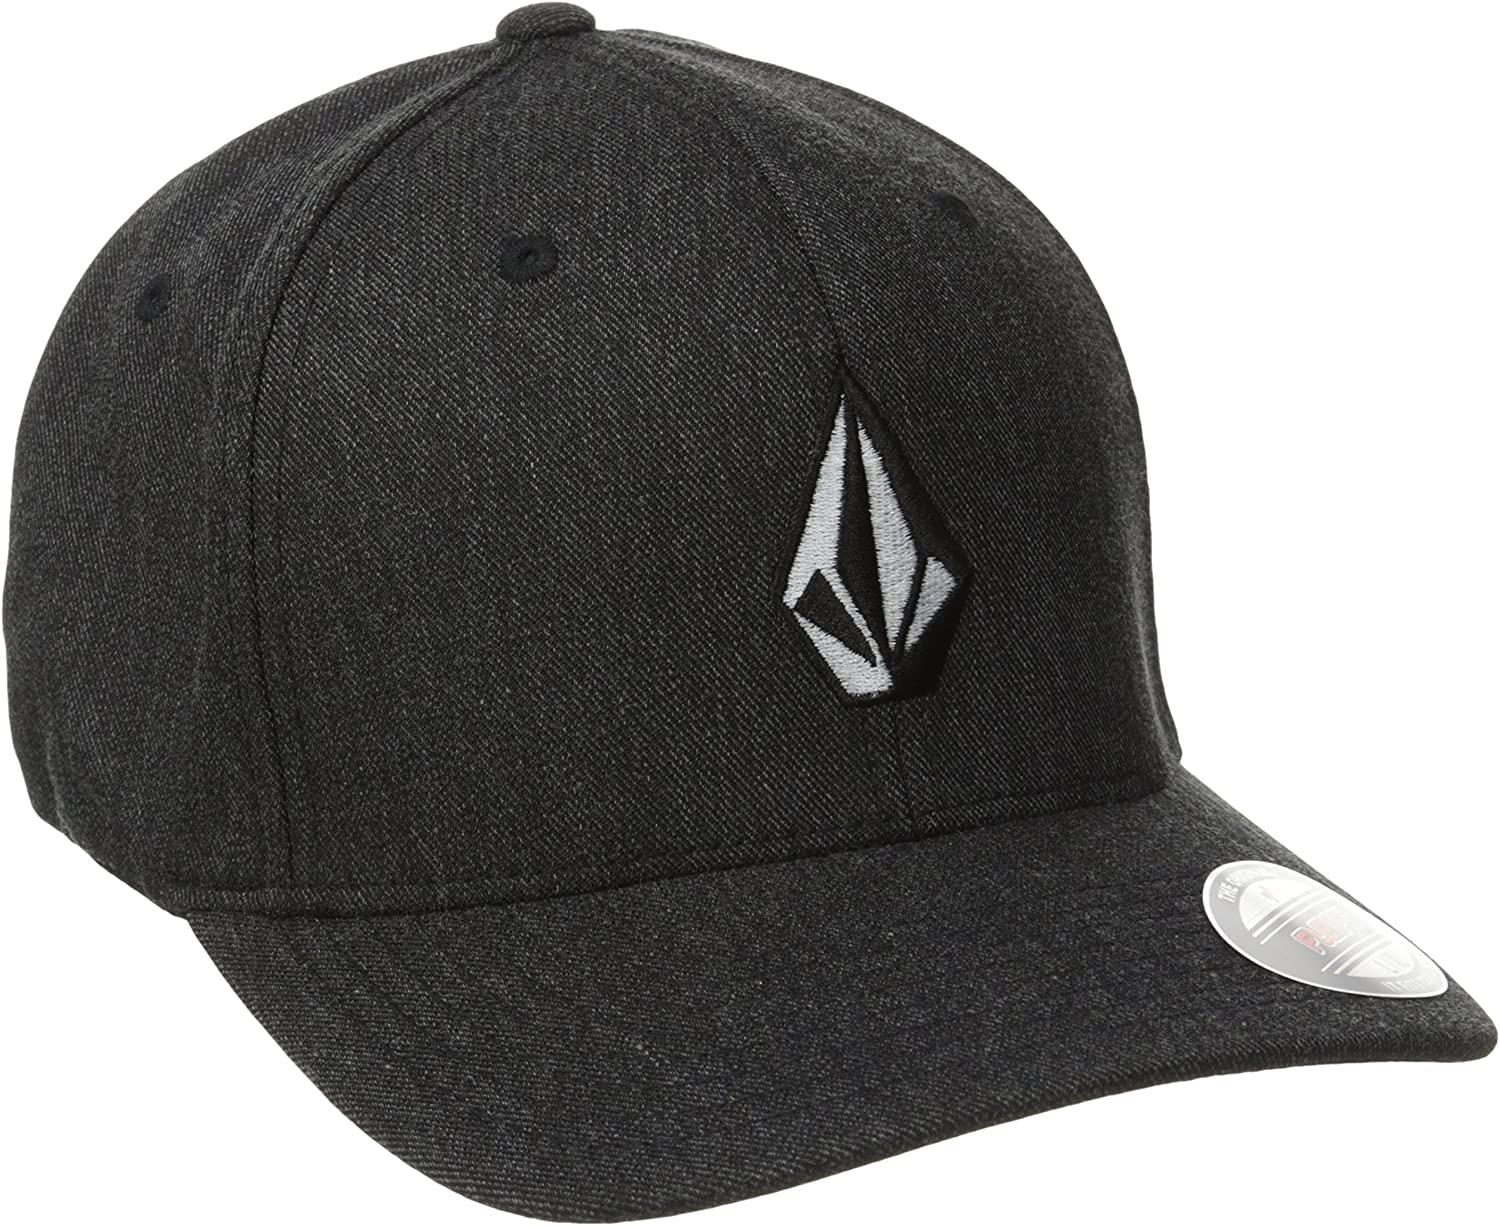 Volcom Men's Full Stone Flexfit Stretch Hat: Clothing